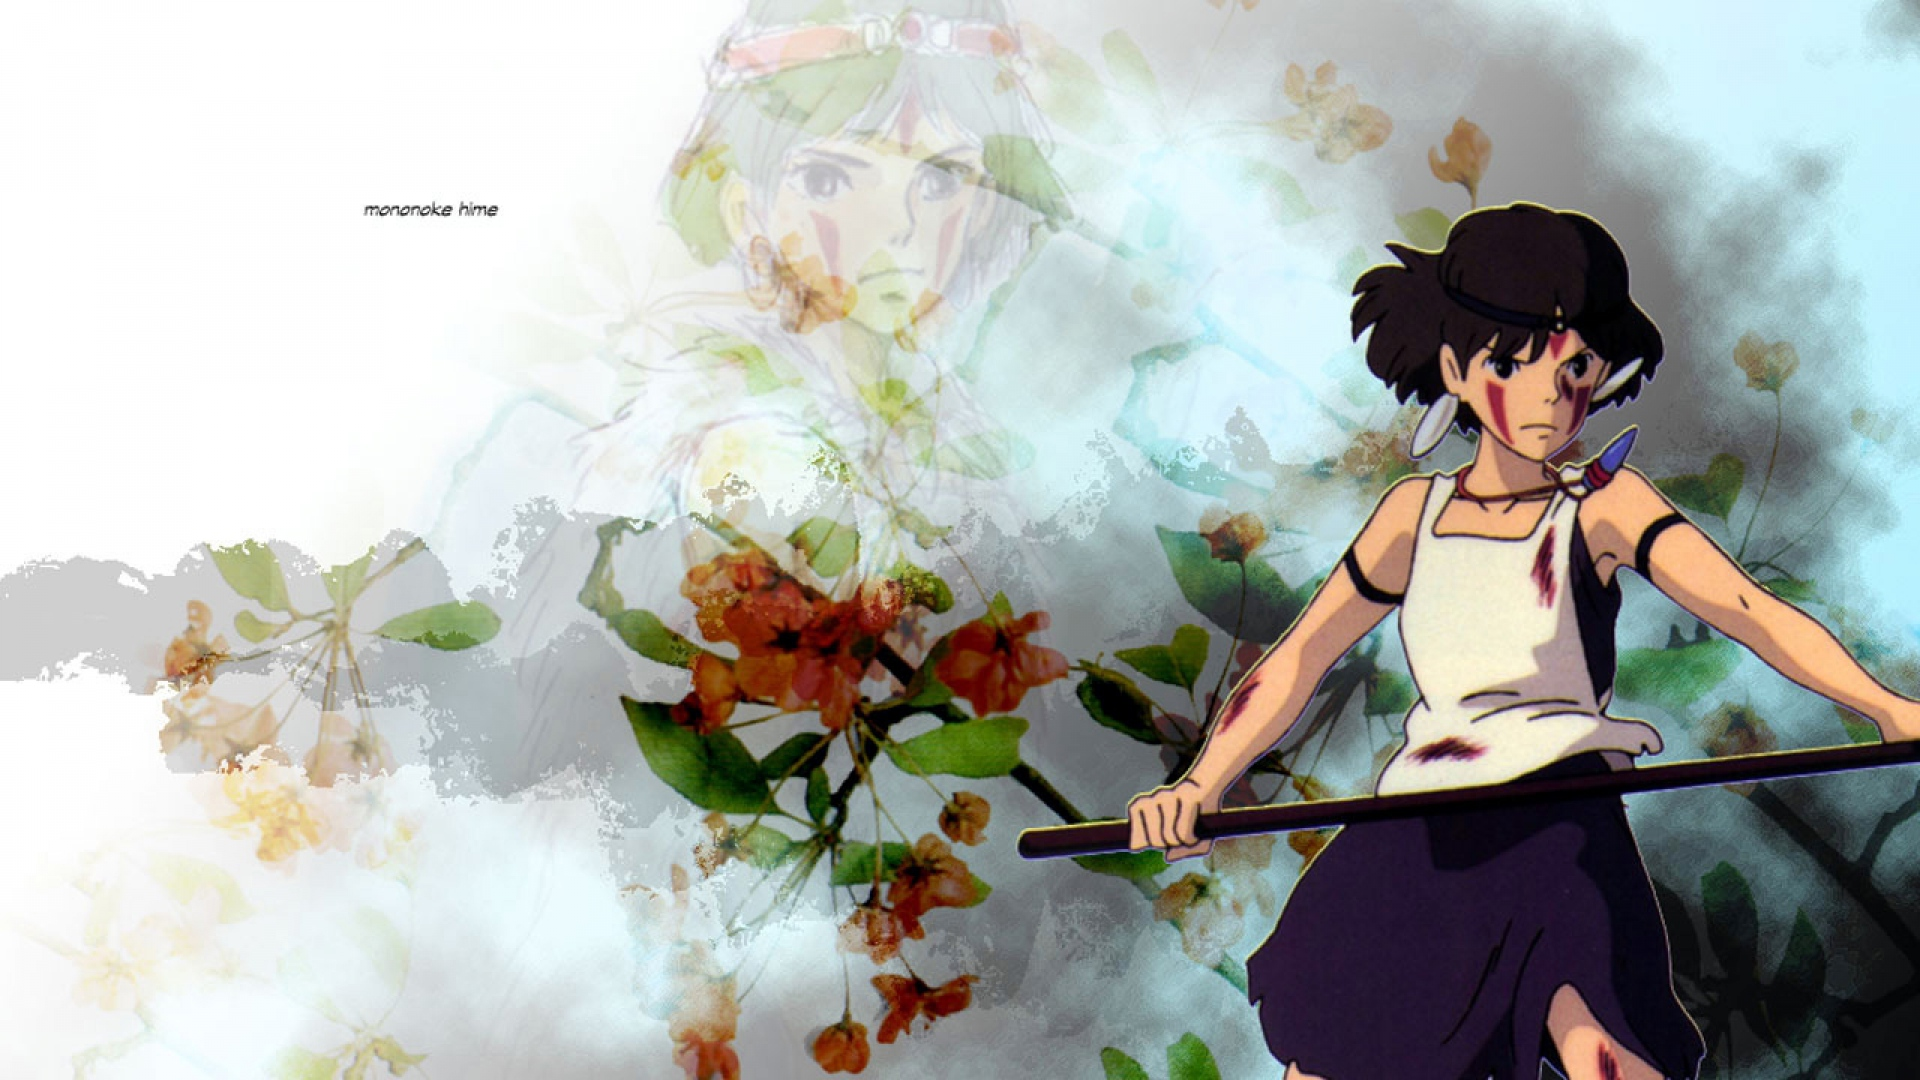 Download Wallpaper 1920x1080 Princess Mononoke Girl Sword Blow Weapons Preparedness Flowers Full Hd 1080p Hd Background